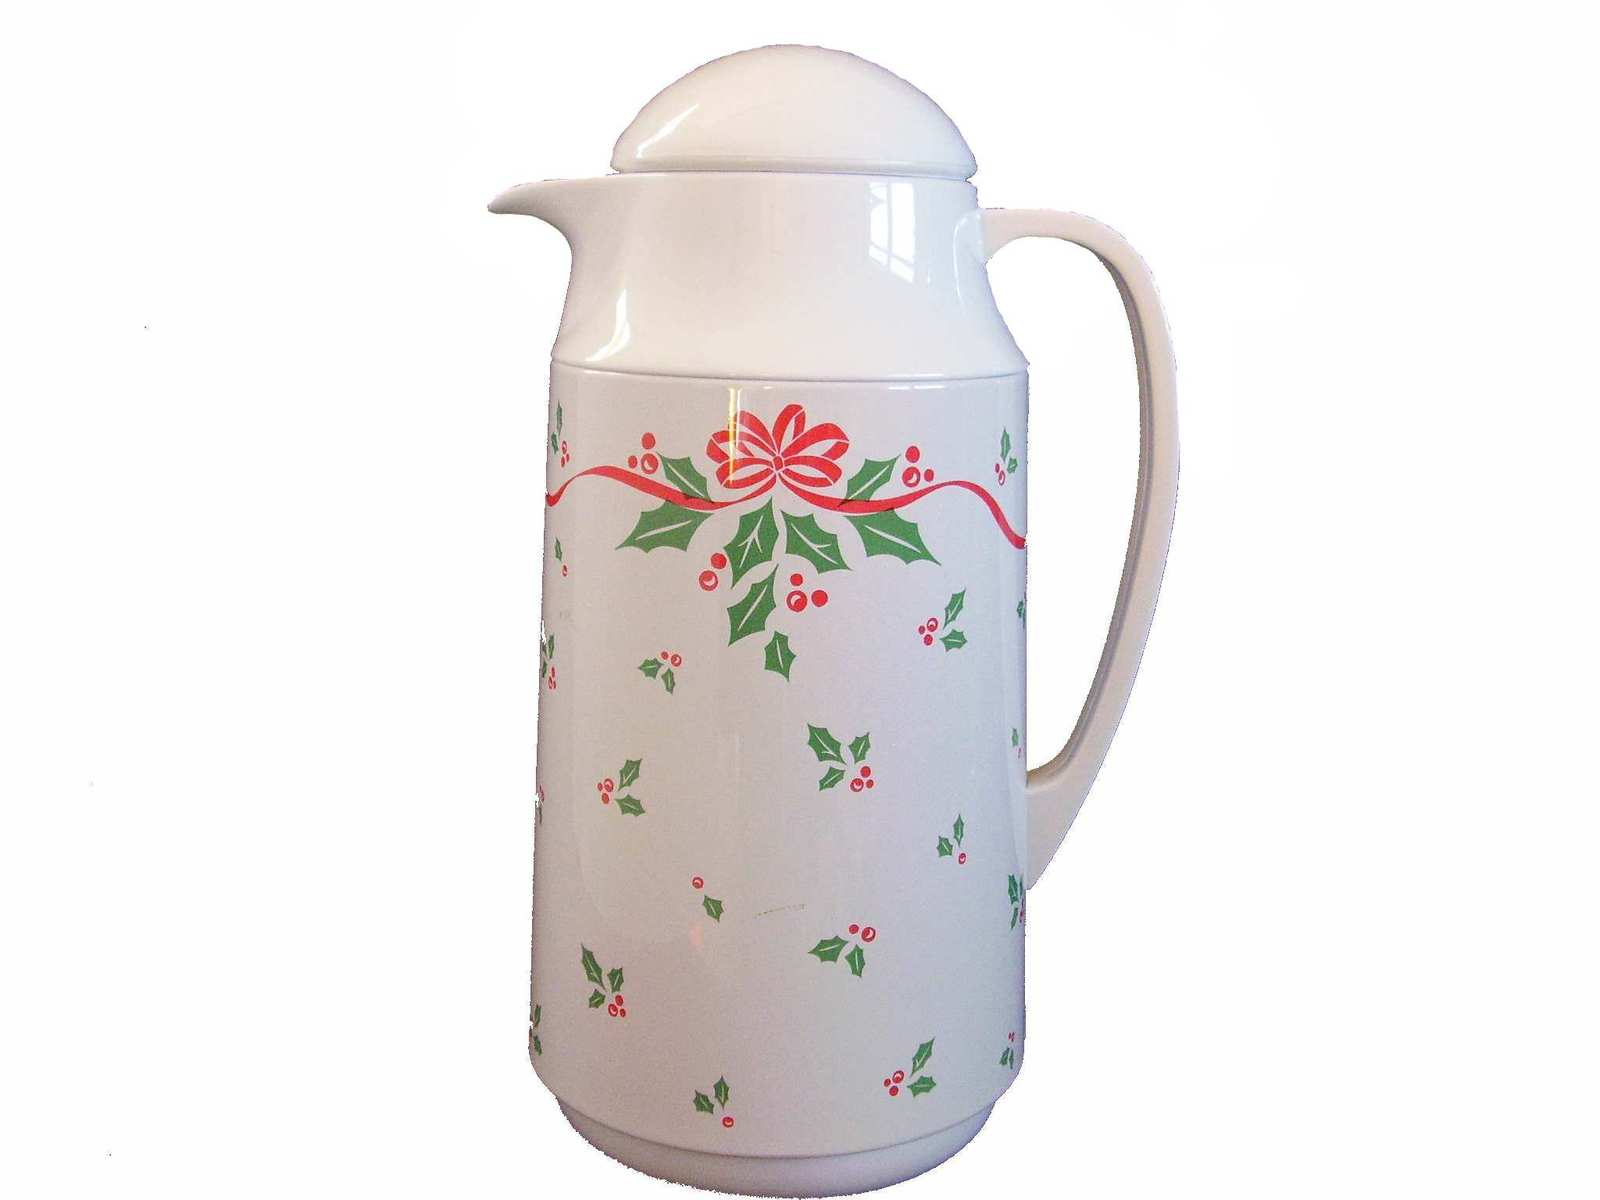 Corningware Corelle Thermique Winter Holly Insulated Carafe - $35.99